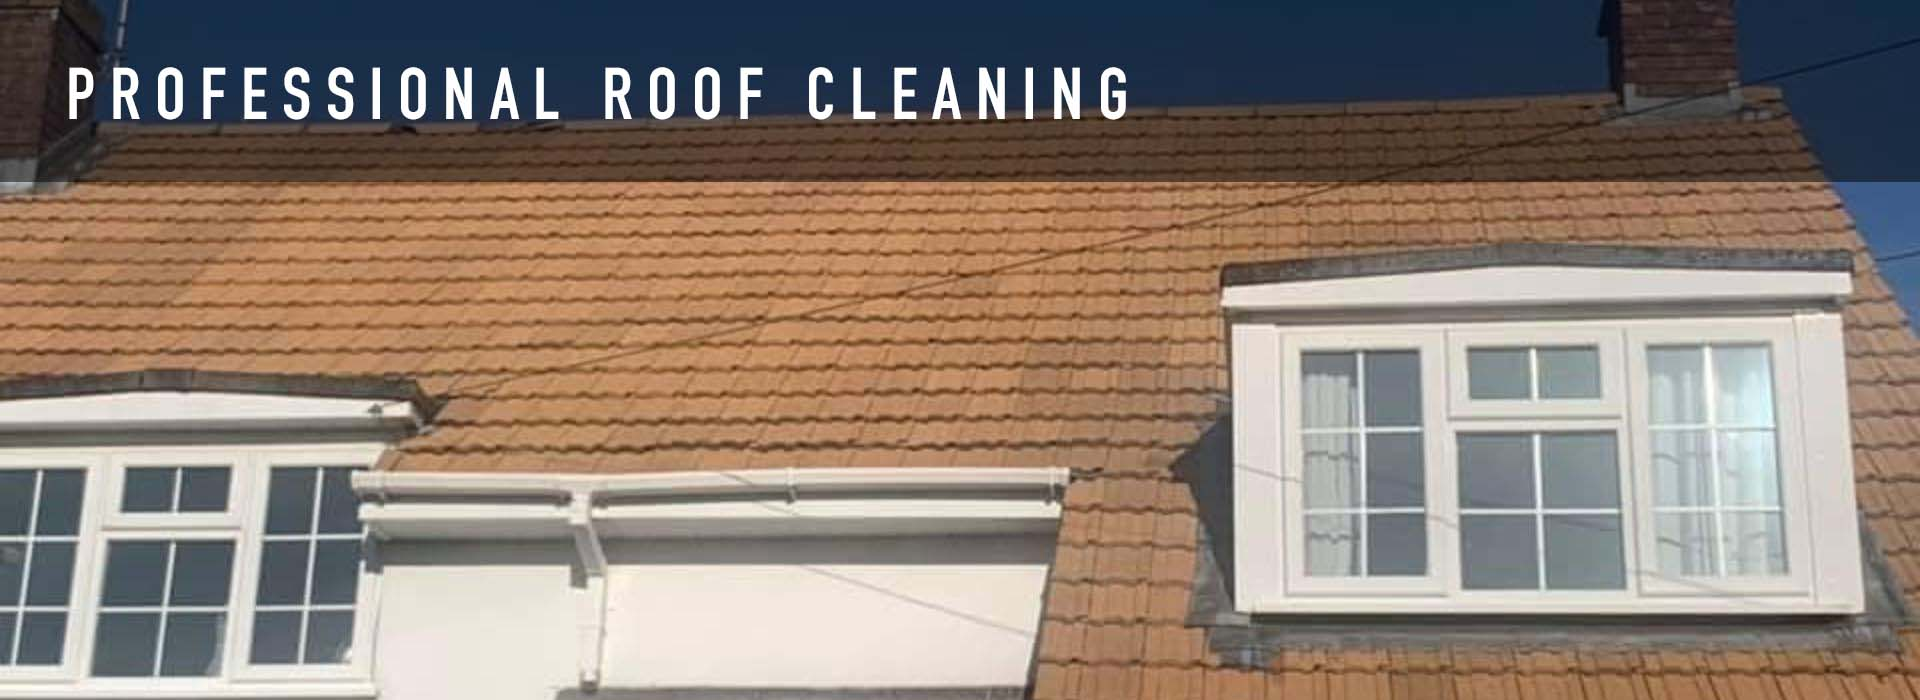 roof cleaning worcester